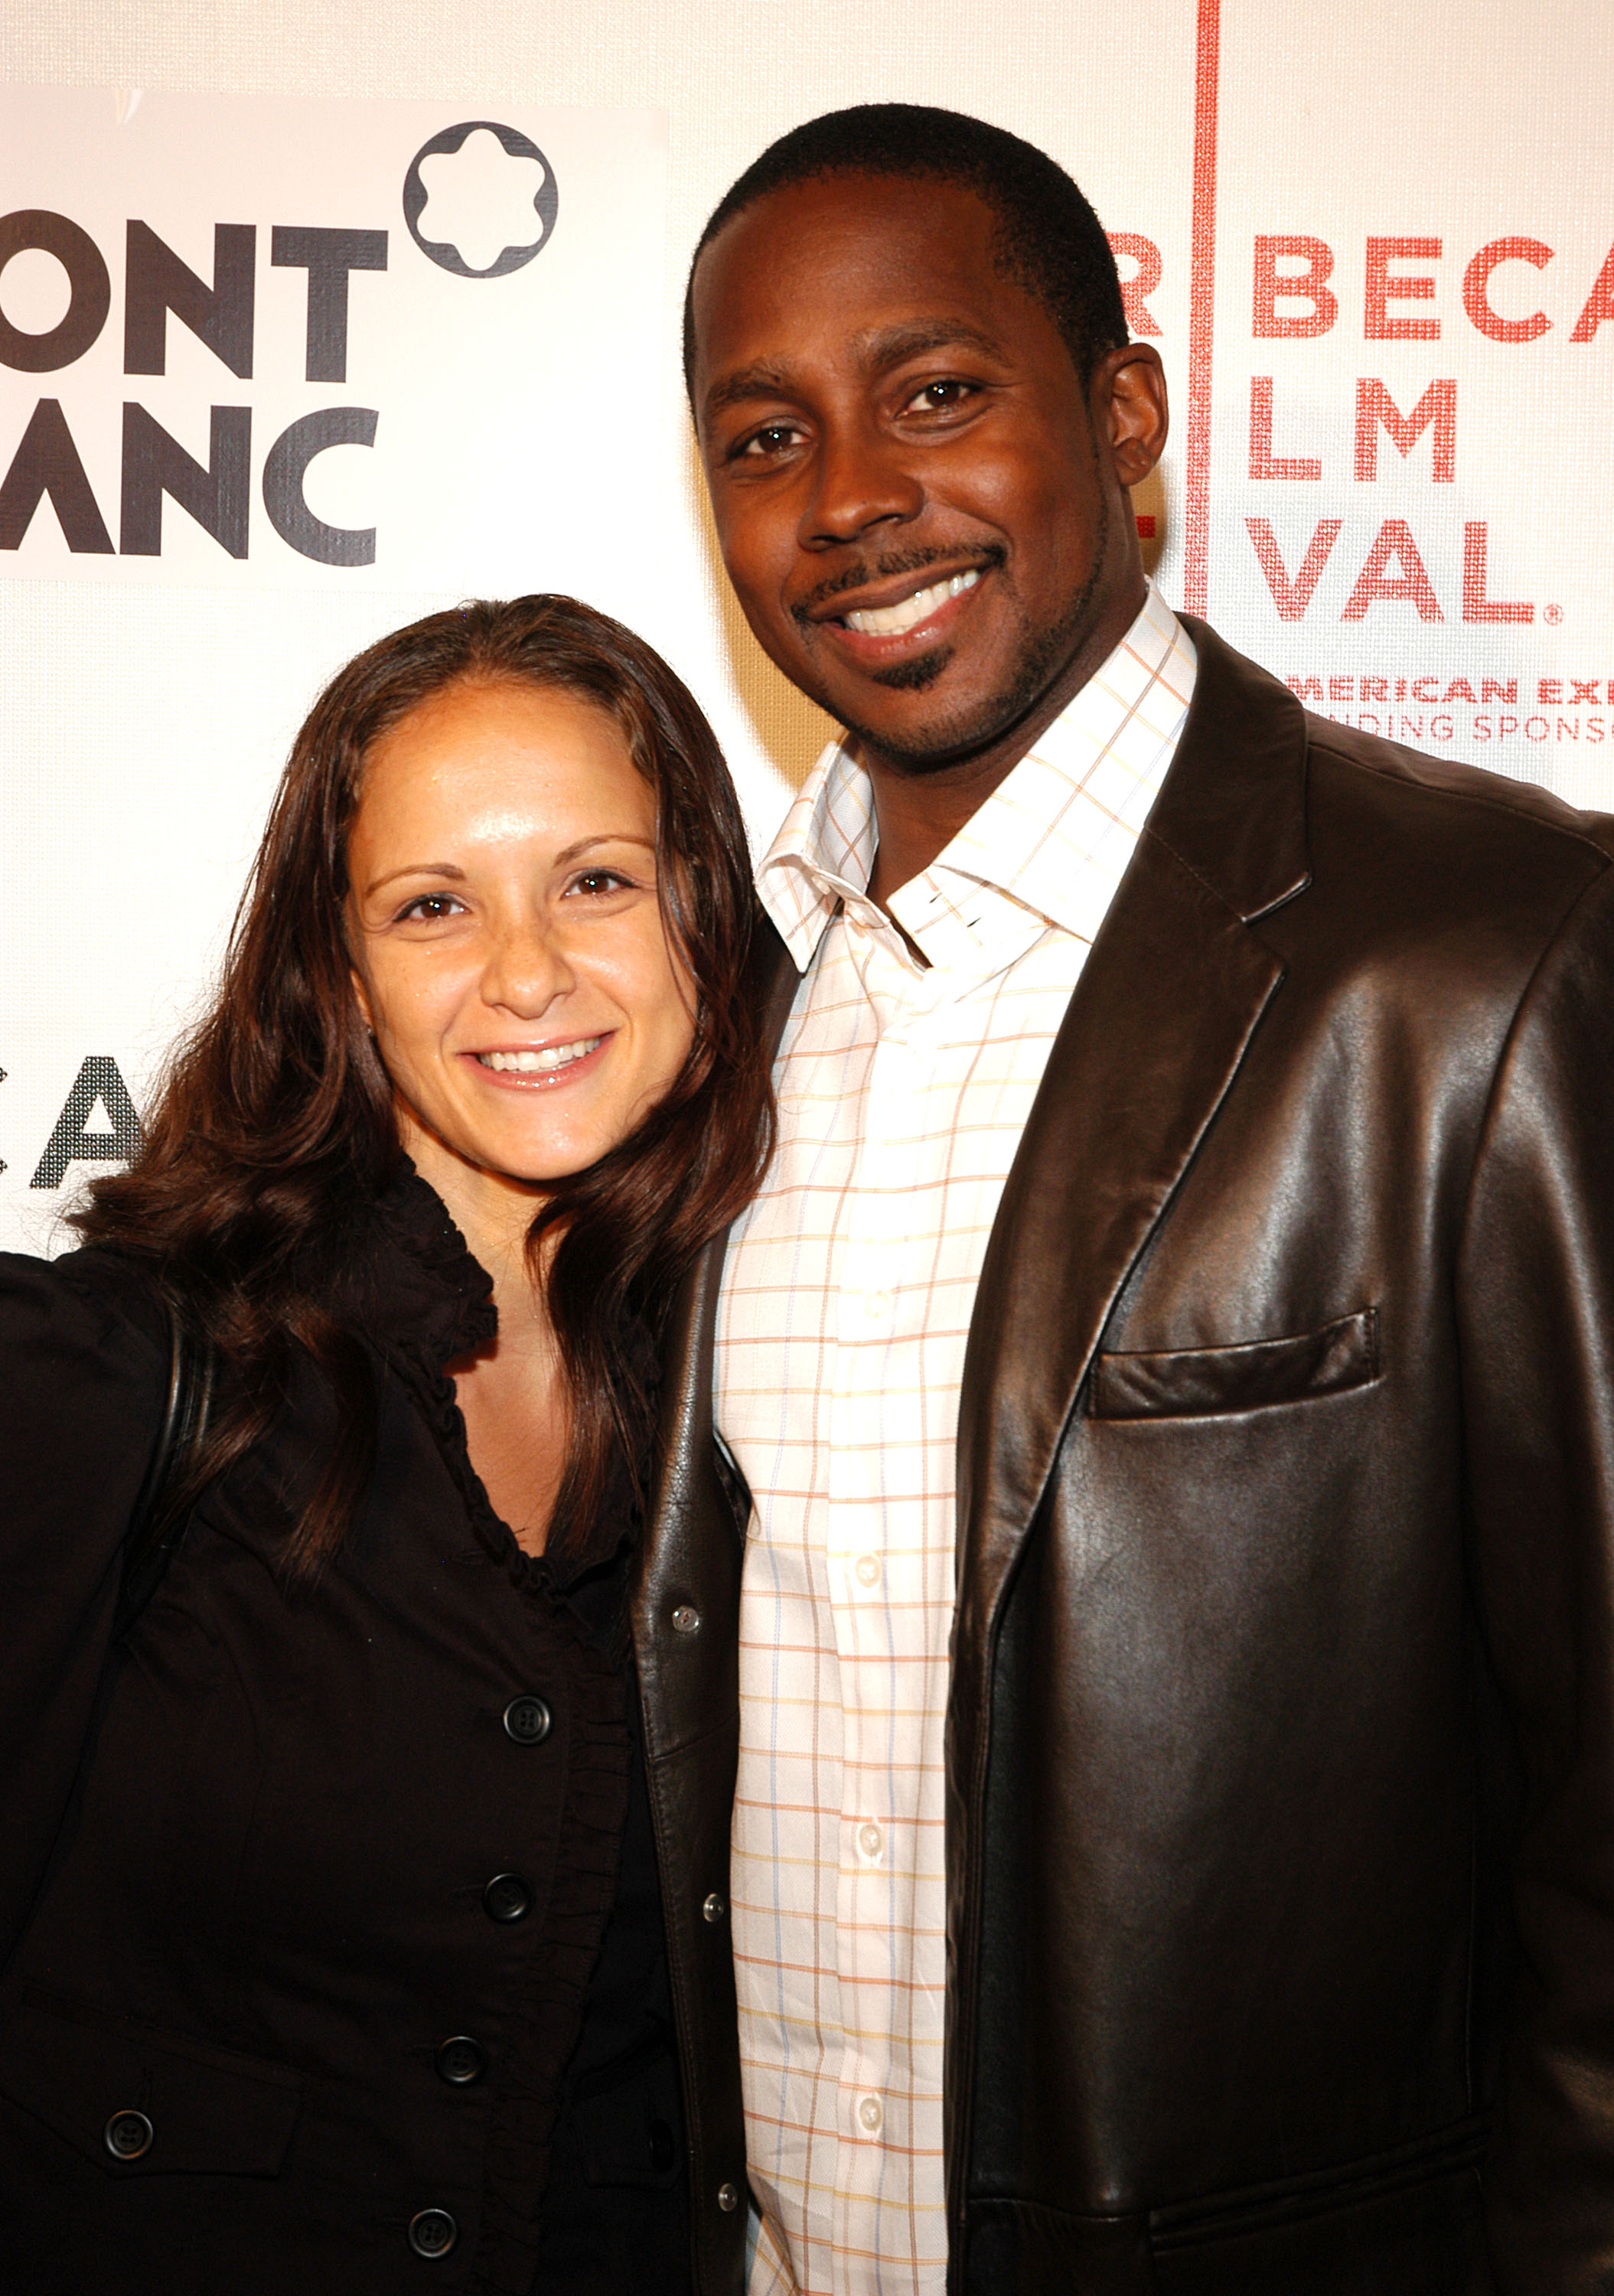 NEW YORK - APRIL 28:  NFL player Desmond Howard and his wife Rebkah attend the premiere of the Power Of The Game at the 2007 Tribeca Film Festival April 28, 2007 in New York City.  (Photo by Steven Henry/Getty Images for Tribeca Film Festival)